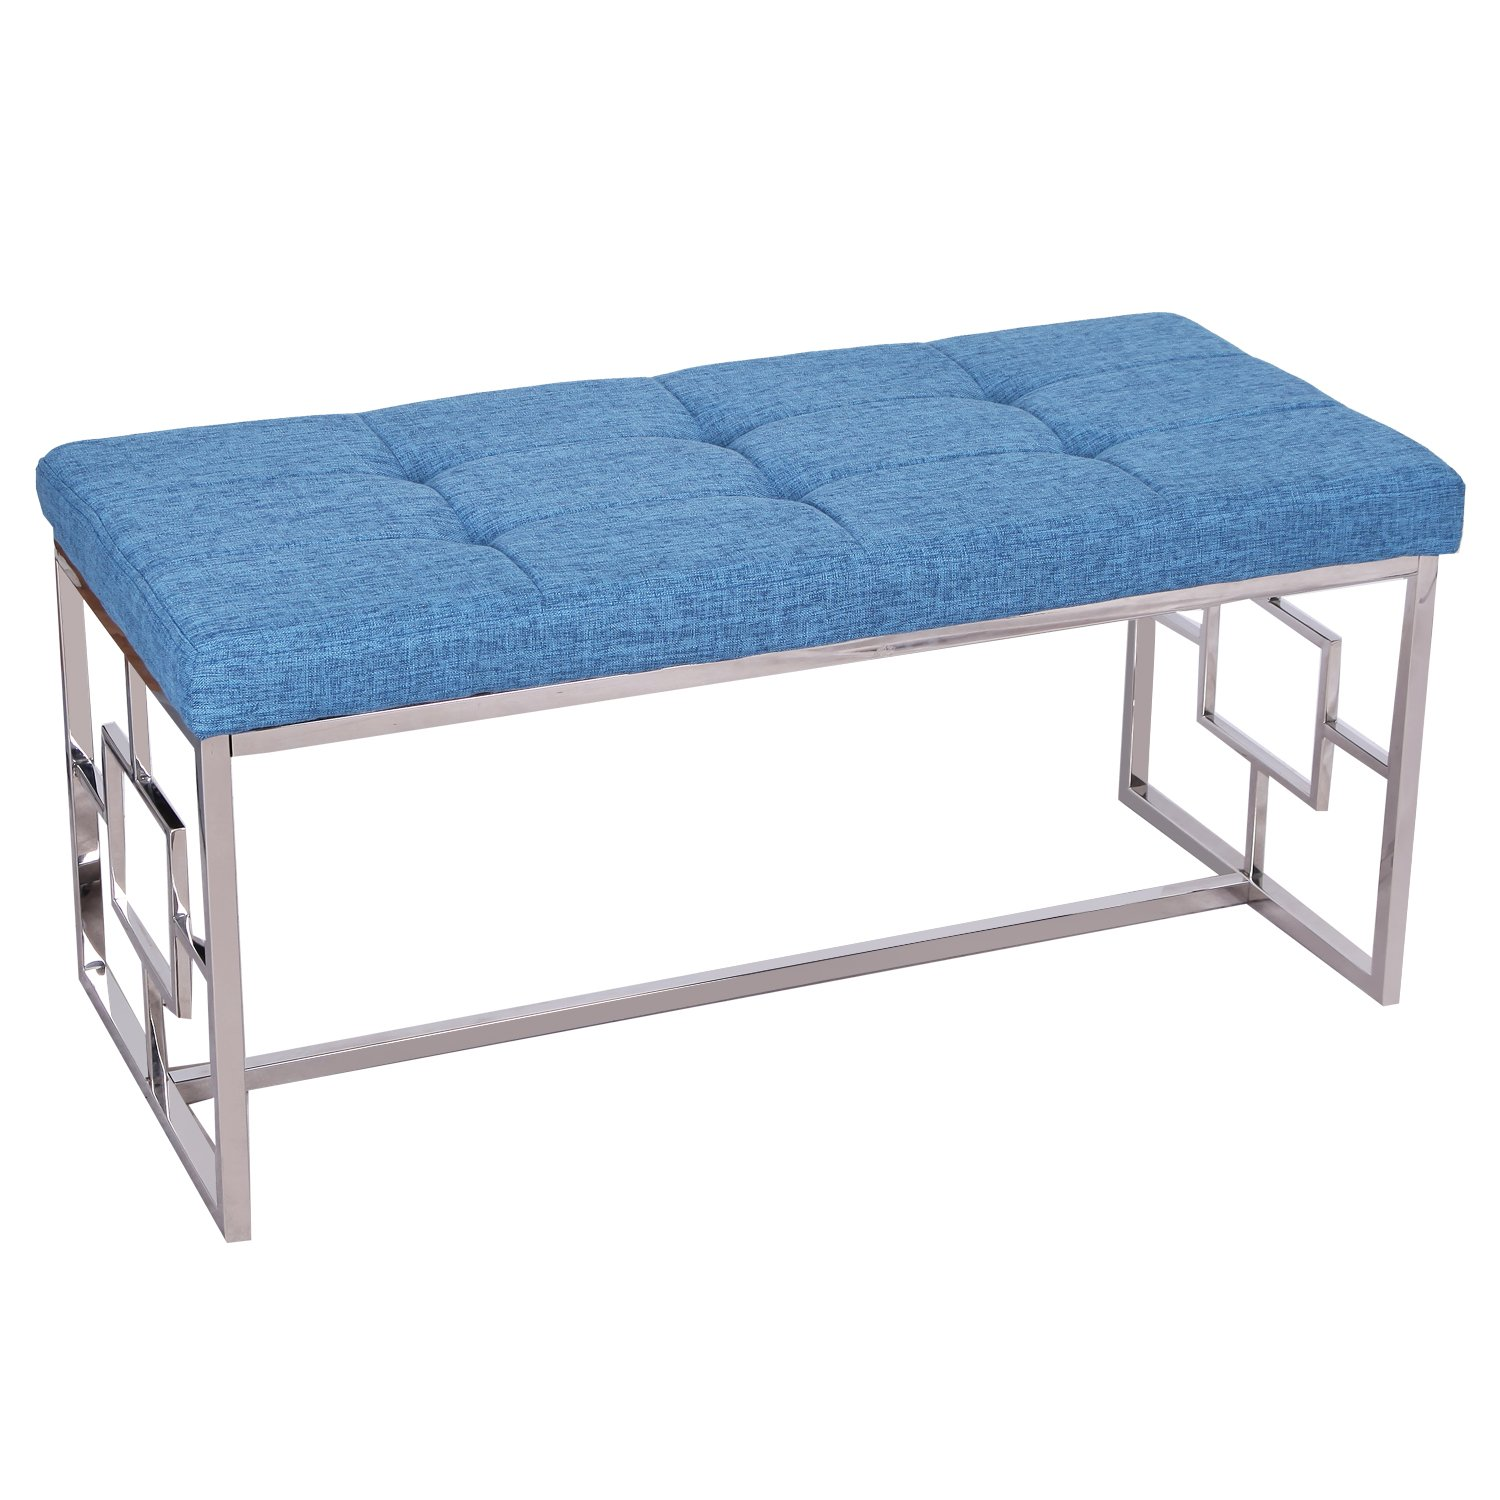 Adeco Stainless Steel Metal Bench Entryway Footstool with Button, Tufted Linen Fabric - Blue, Blue